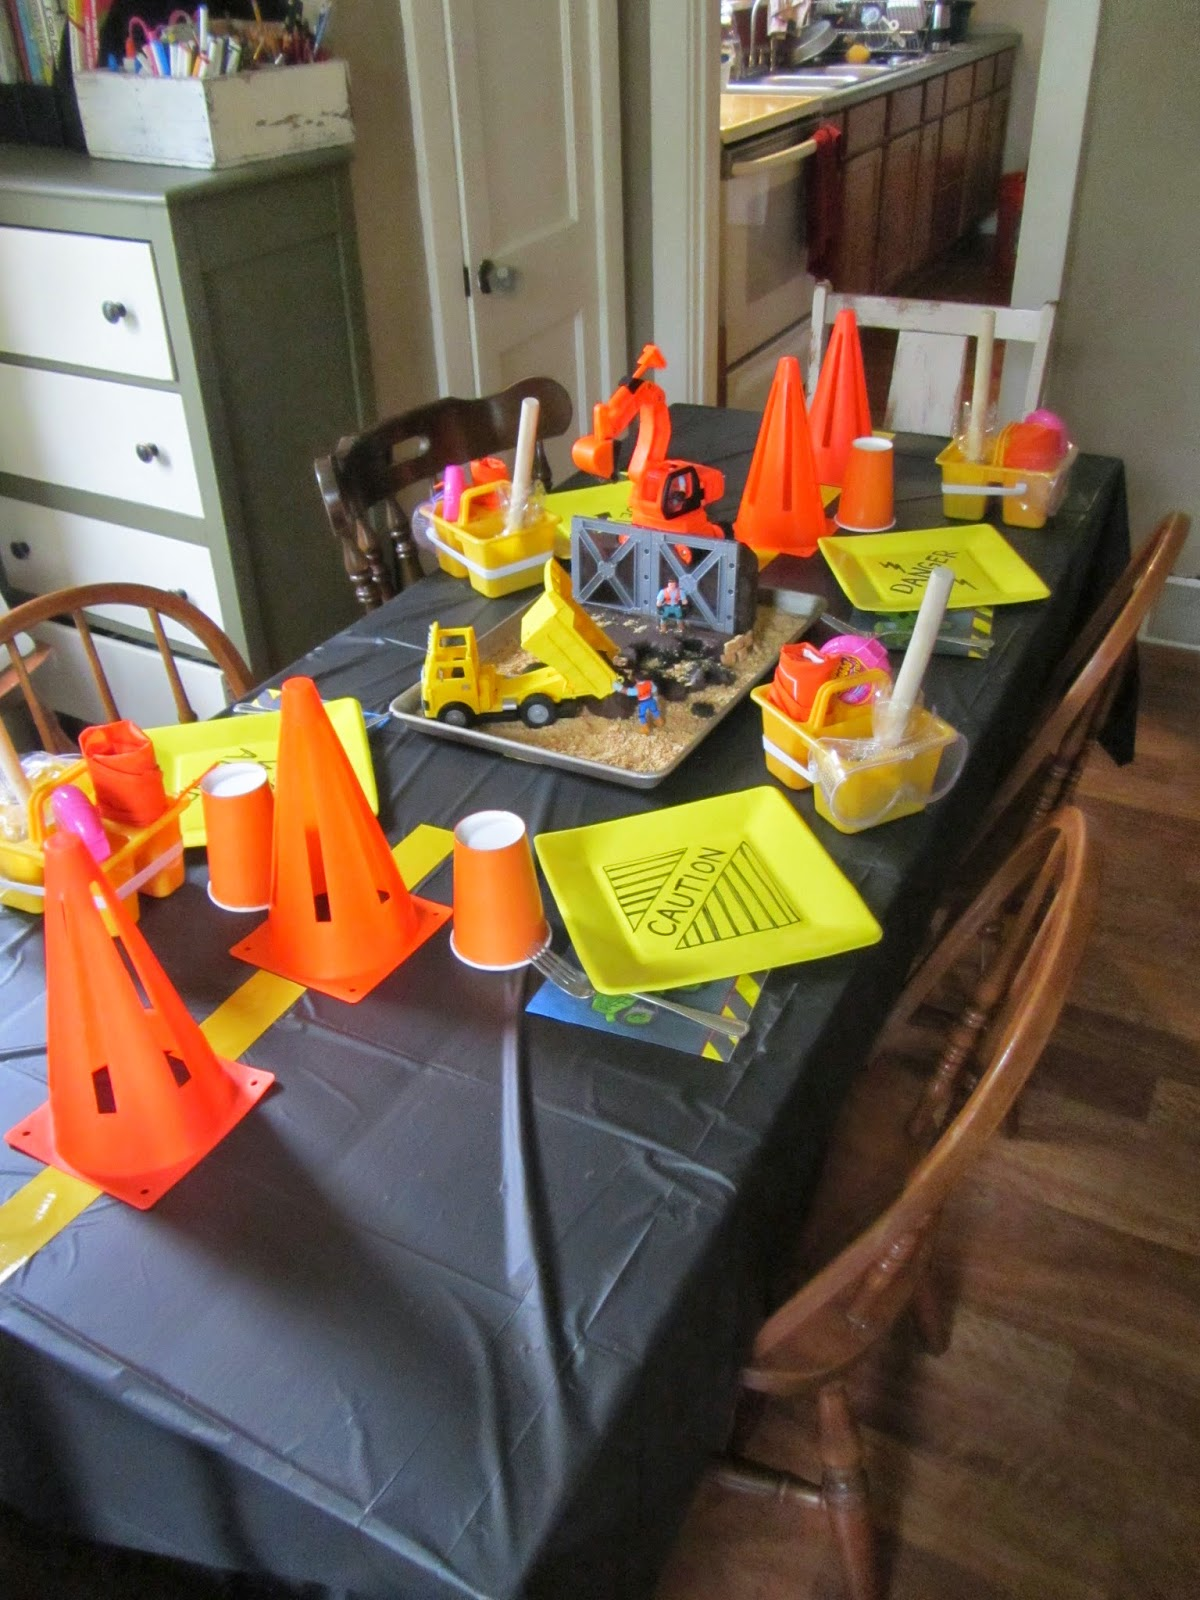 Construction Worker birthday party with several construction worker-themed games and decoration ideas {The Unlikely Homeschool}